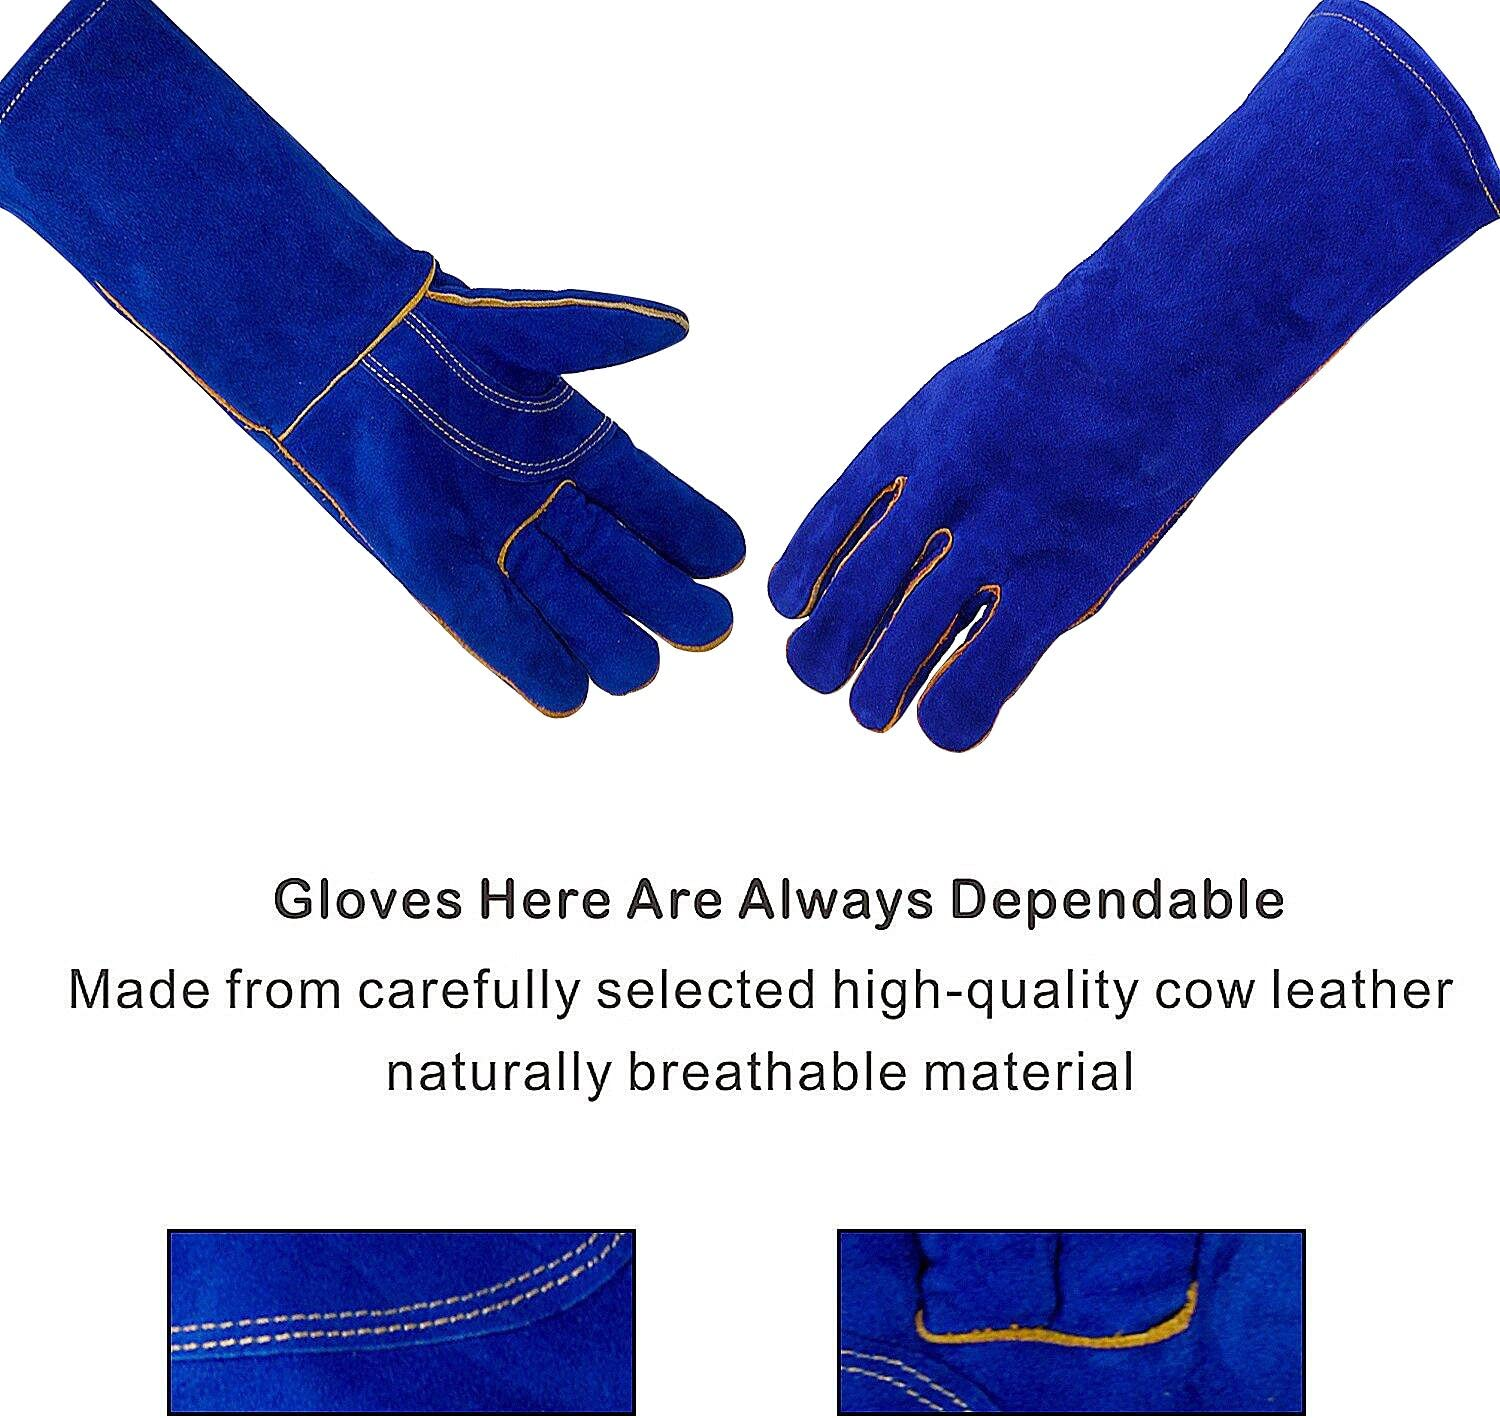 NPL Extreme Heat/&Fire Resistant Gloves Leather with Kevlar Stitching Mitts Perfect for Welding Oven Grill BBQ Mig Fireplace Stove Pot Holder Tig Welder Animal Handling14in Blue